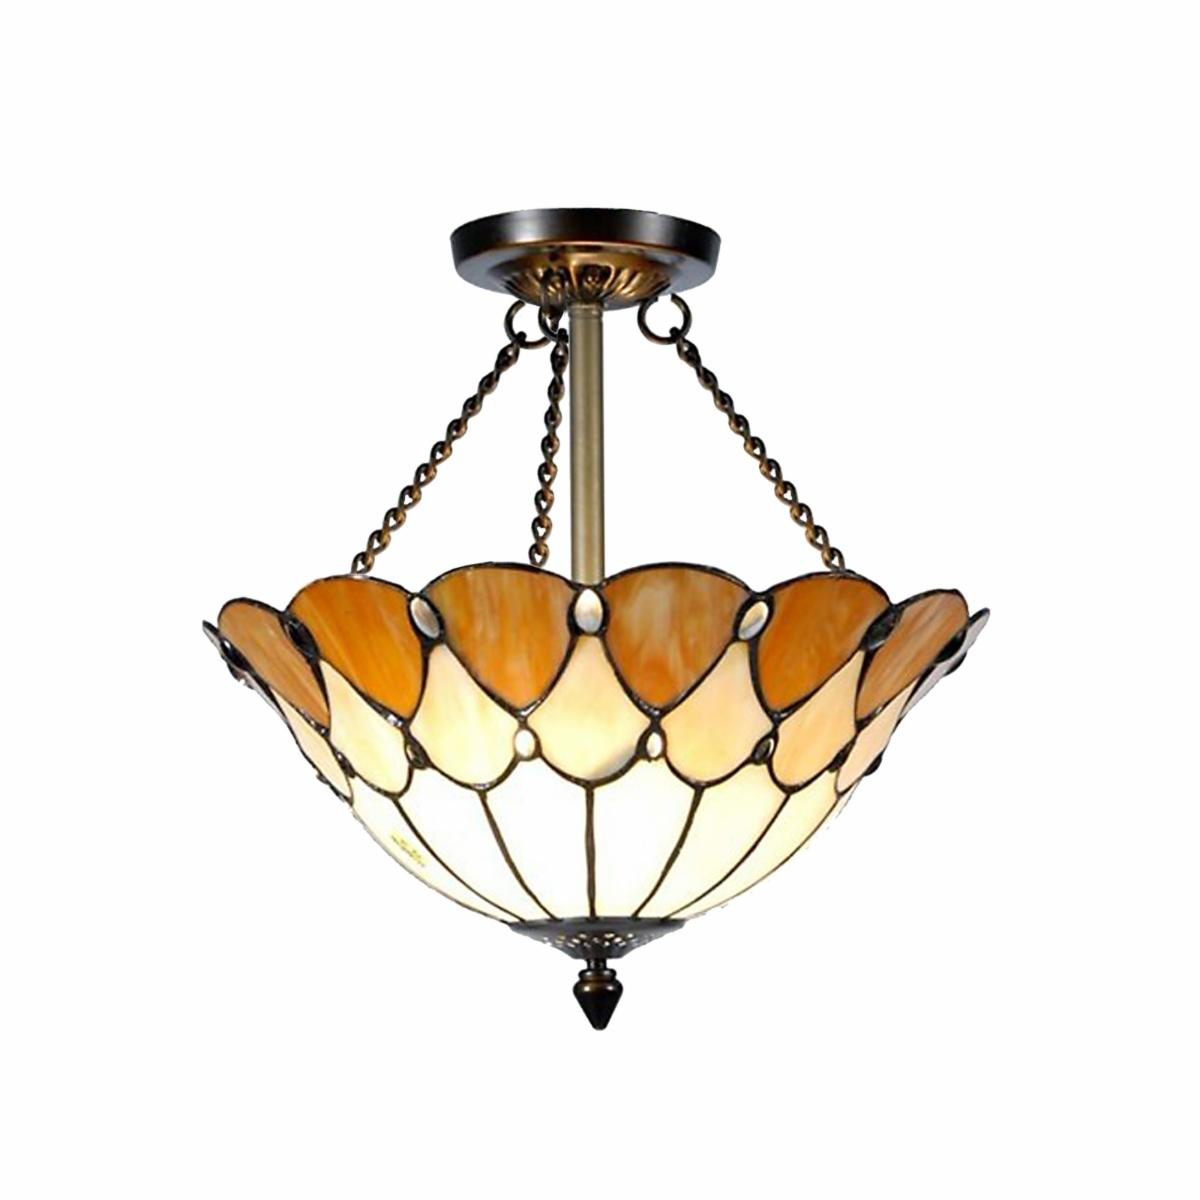 Dale Tiffany Scalloped Jeweled Flush Mount   14 watt in. Antique Bronze Paint   Tiffany Ceiling Lighting